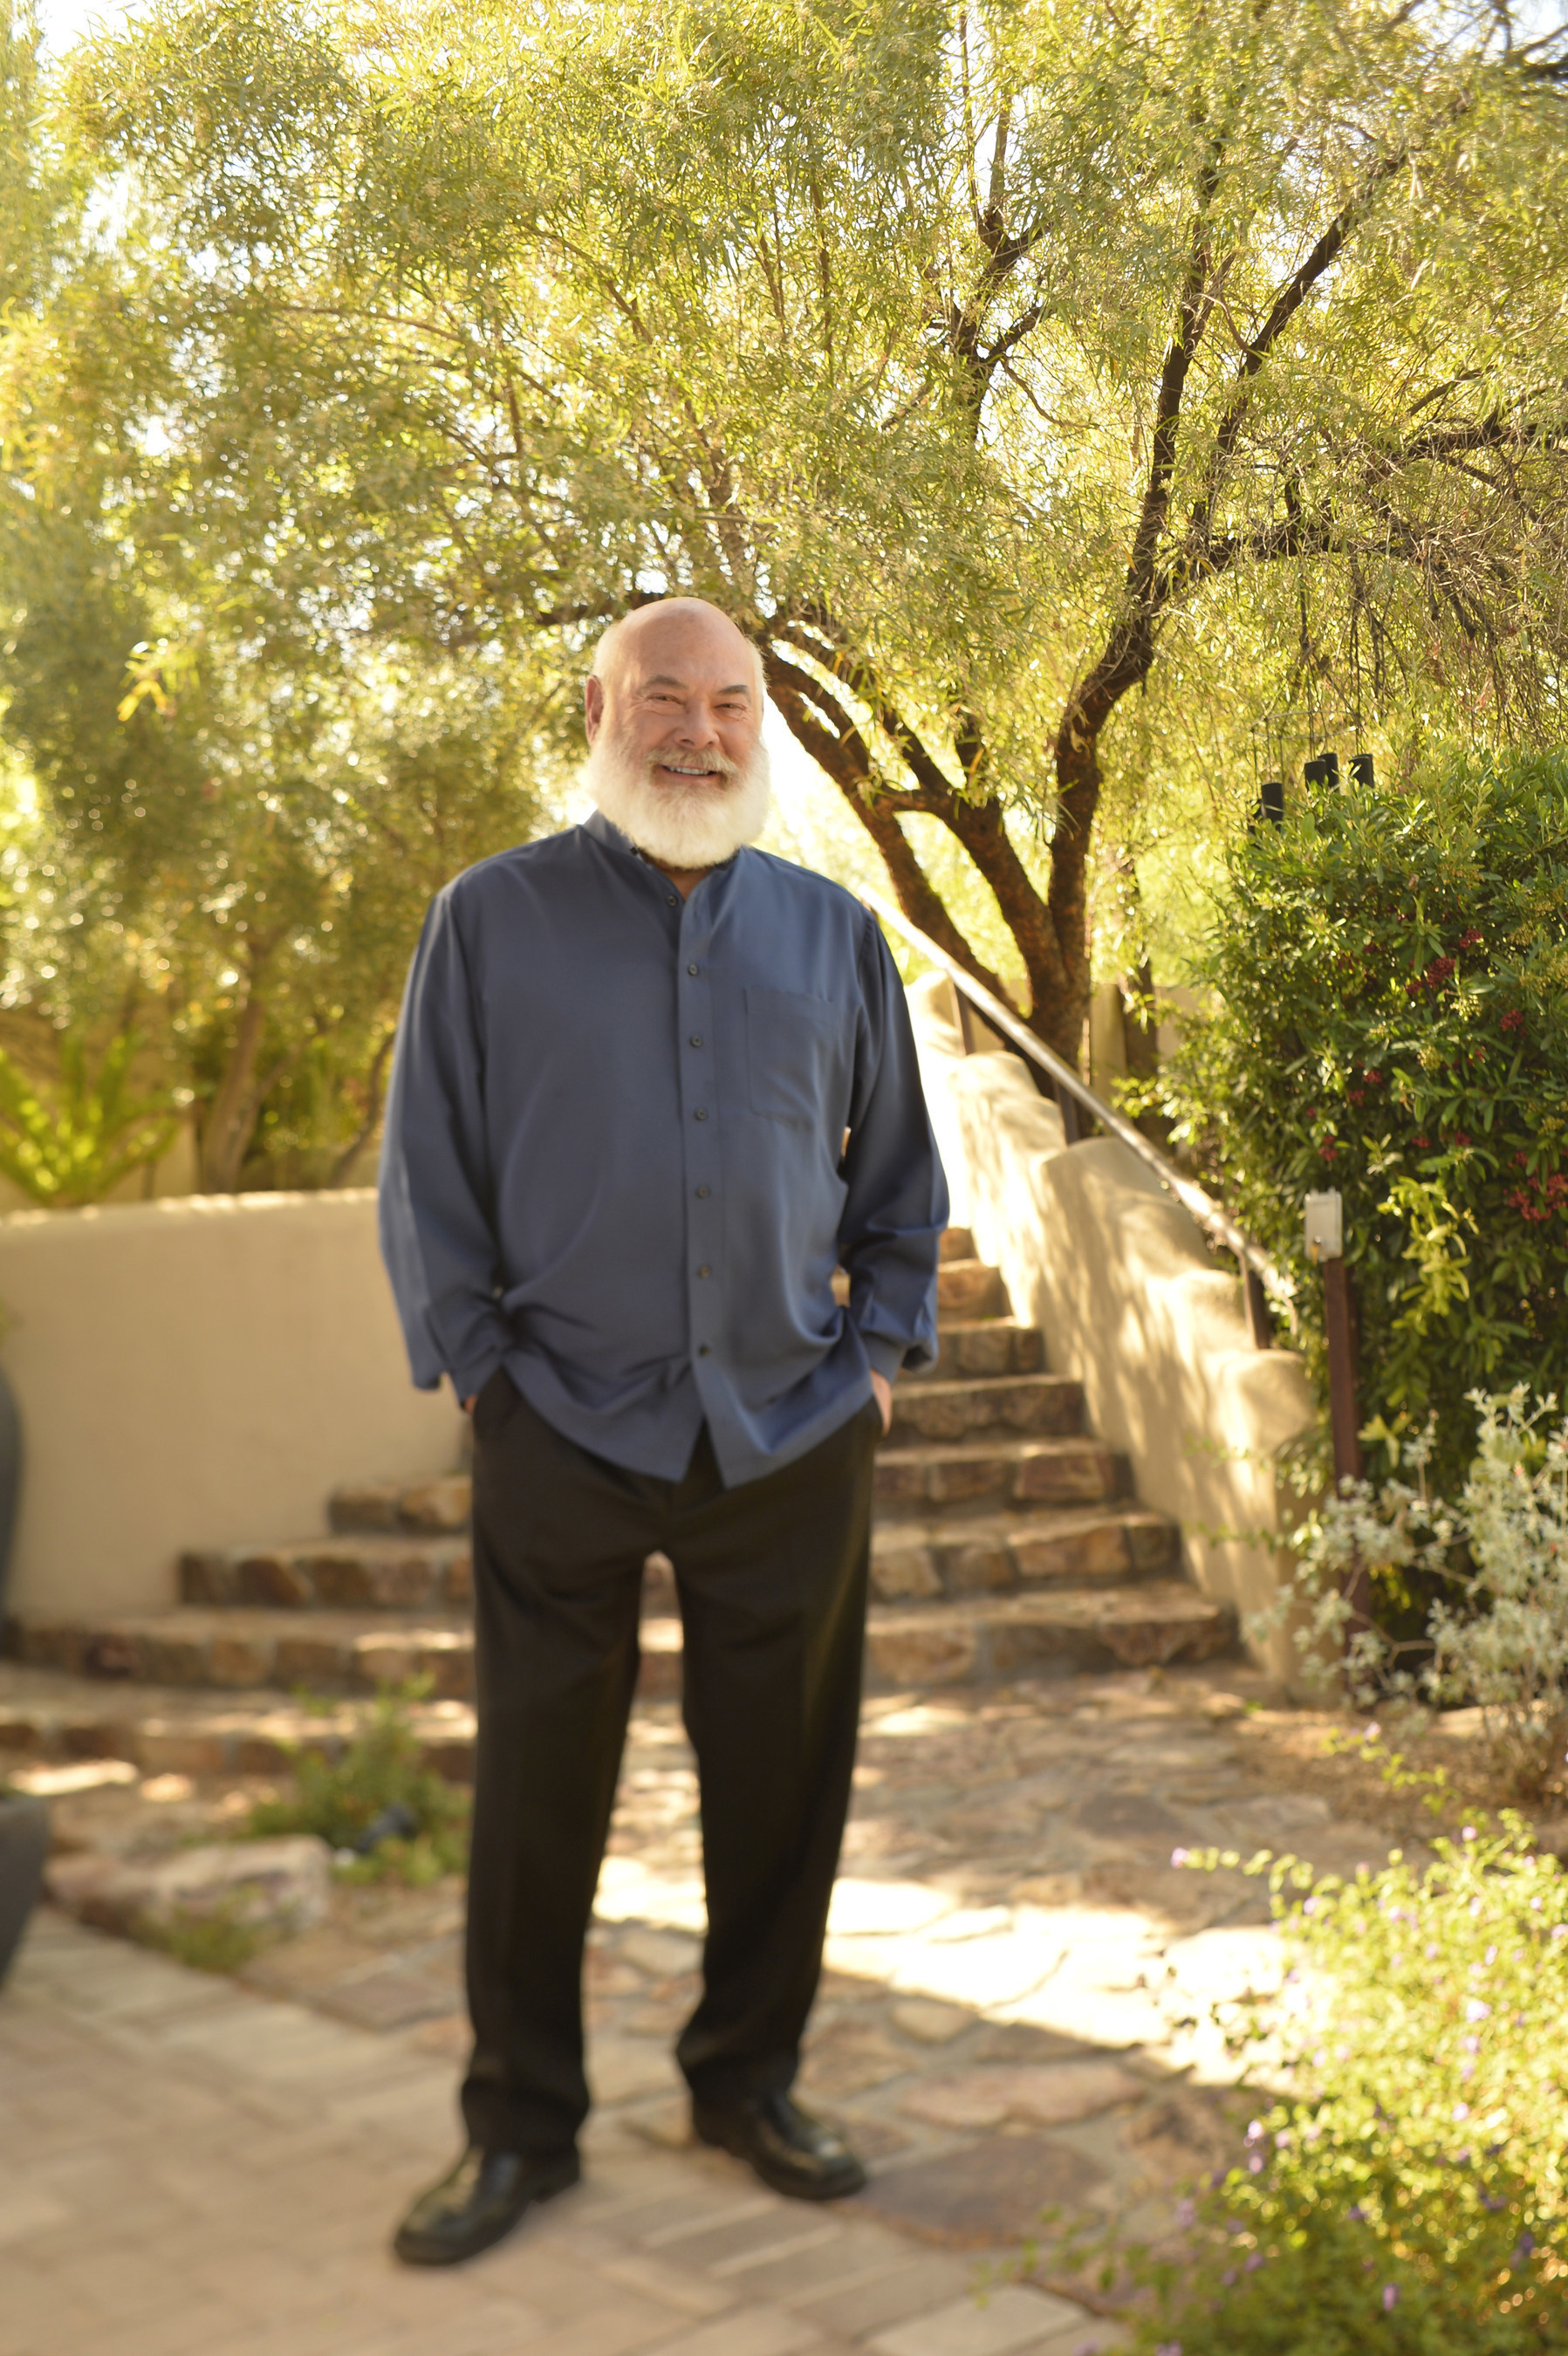 Seabourn Partners with Integrative Medicine Pioneer, Dr. Andrew Weil, to Offer Spa and Wellness Programs Aboard Luxury Fleet